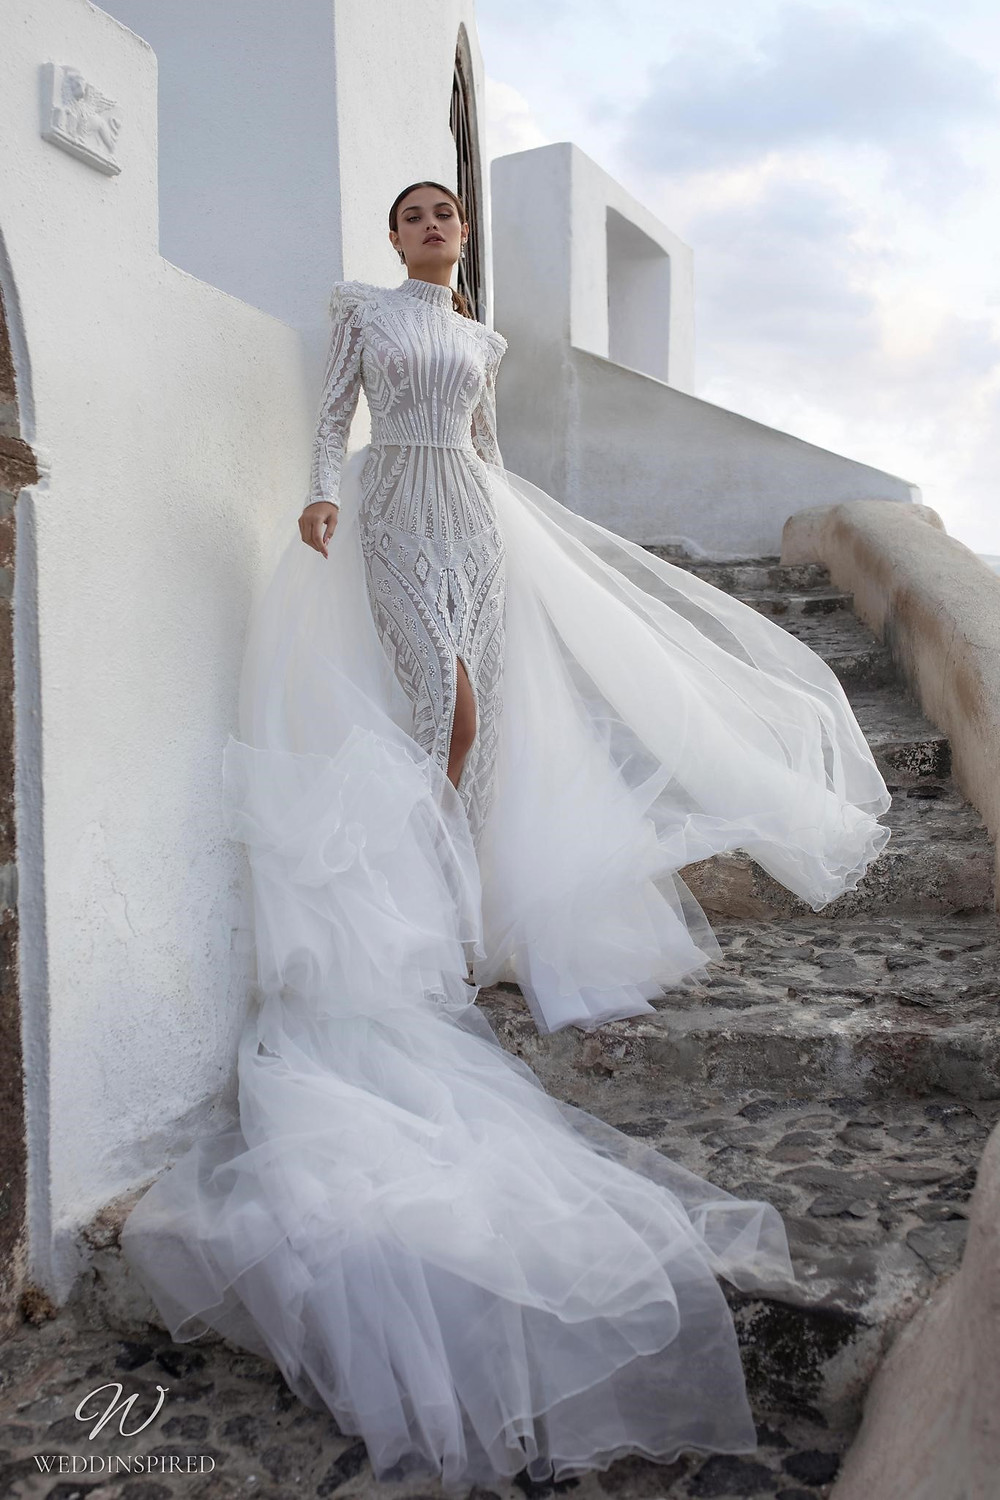 A Ricca Sposa lace high neck column wedding dress with a tulle detachable skirt, long sleeves and a high slit